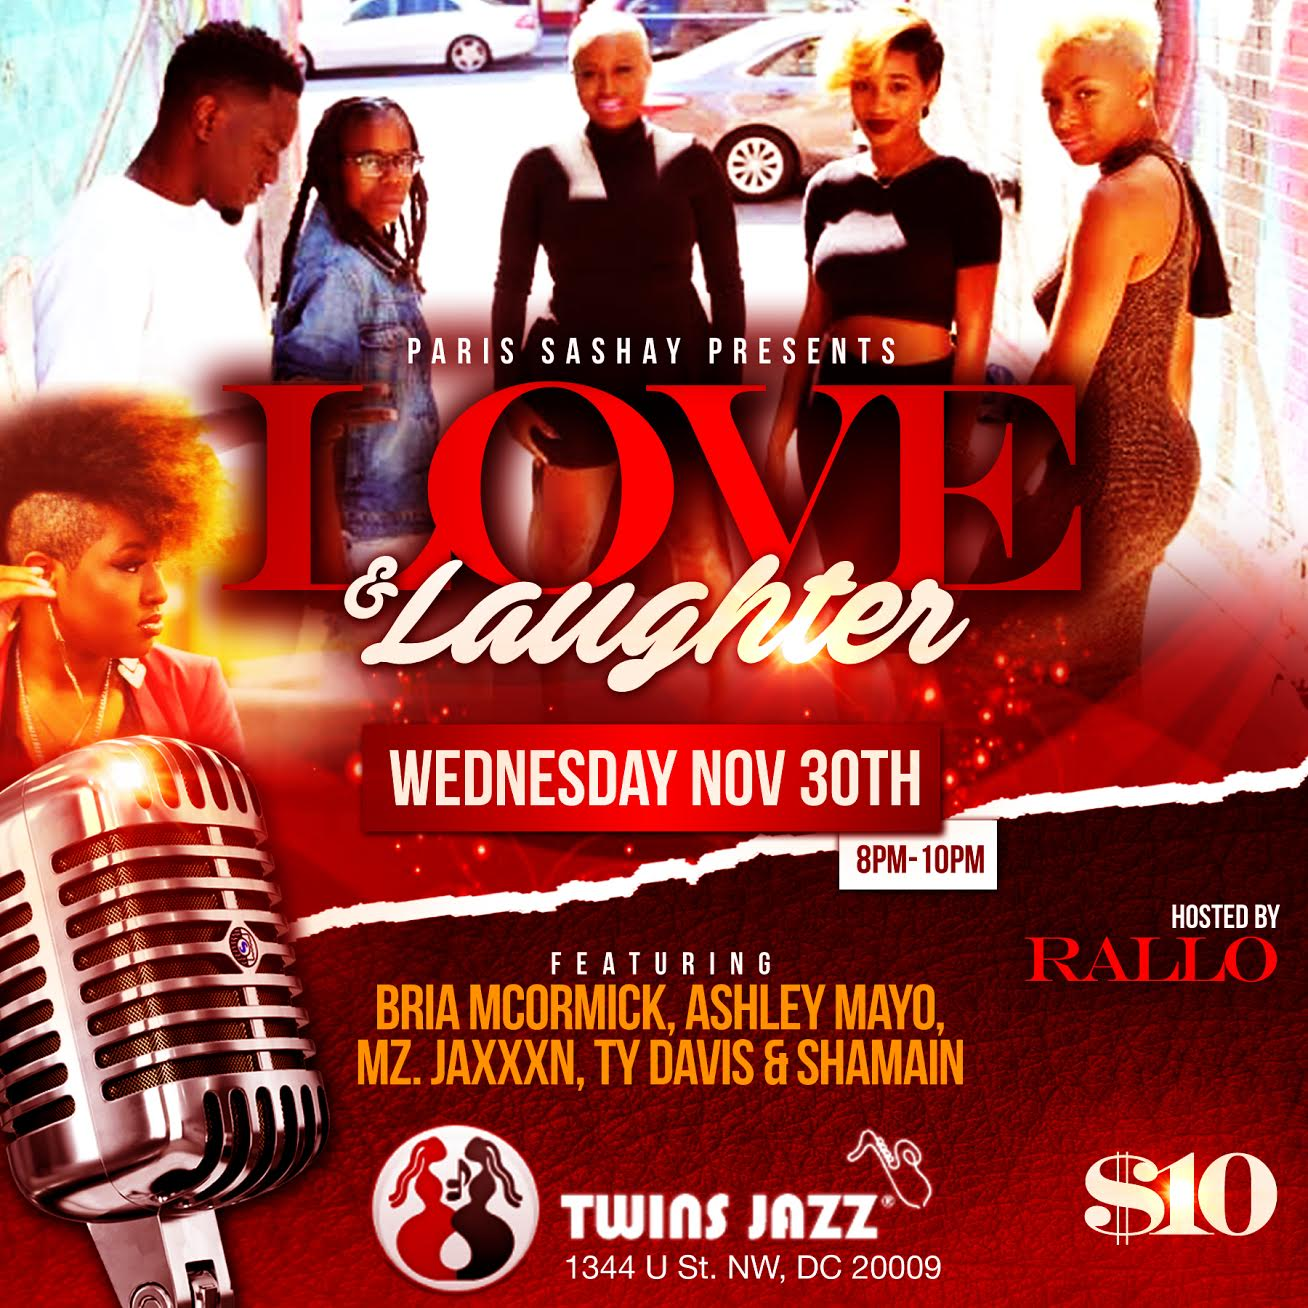 Love & Laughter Wednesday, Nov 30th 8:oopm - 1o:oopm Twins Jazz | 1344 U St. NW | Washington,DC 20009   Tickets